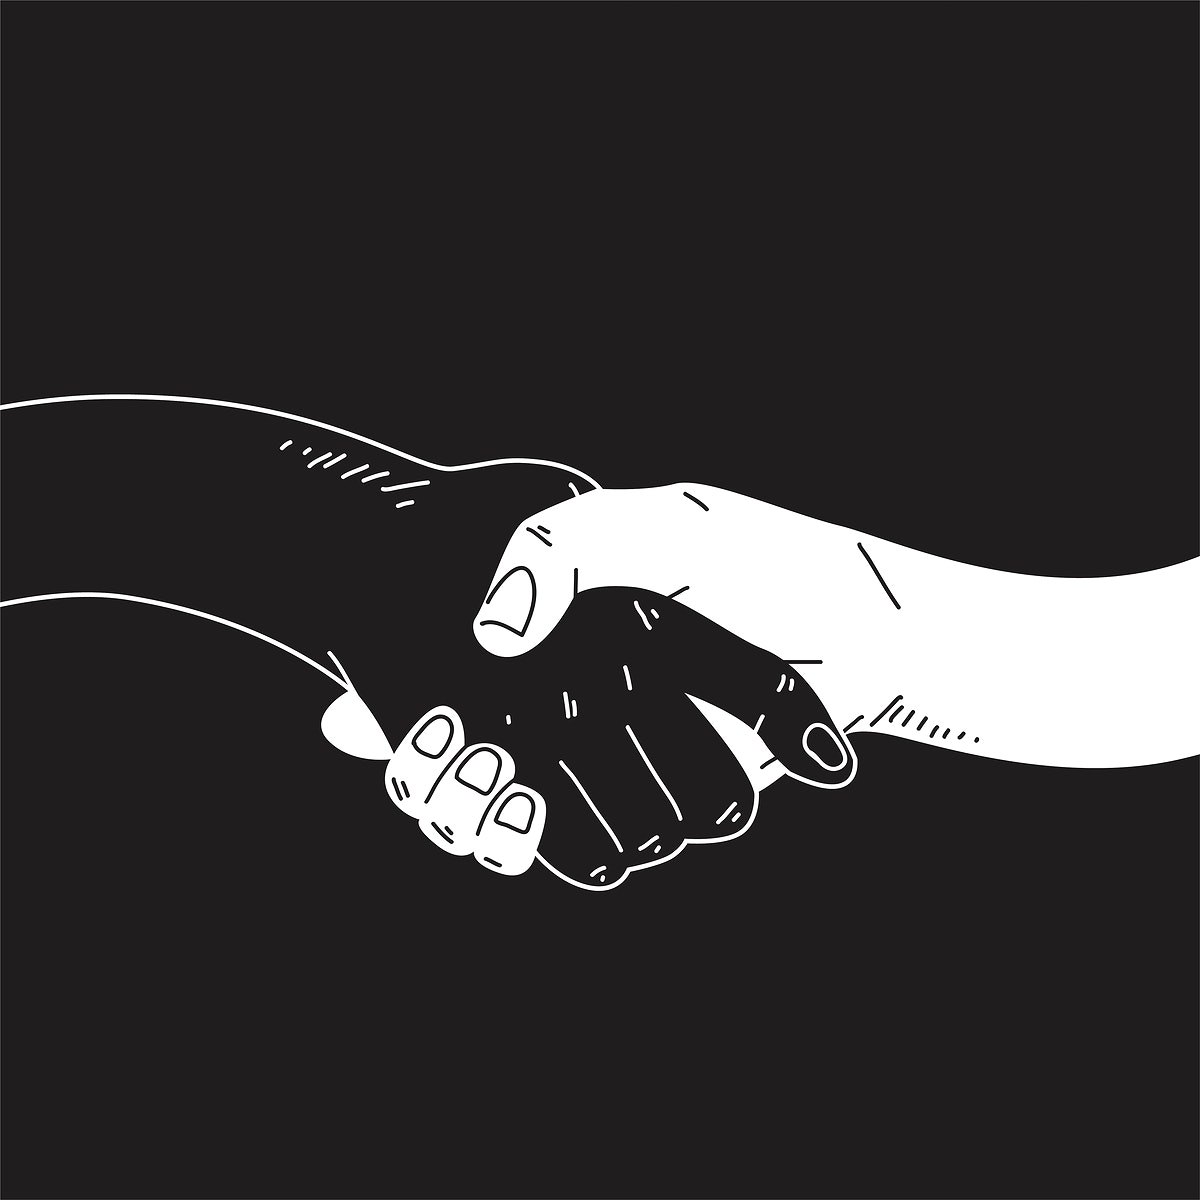 Hands shaking comic style vector